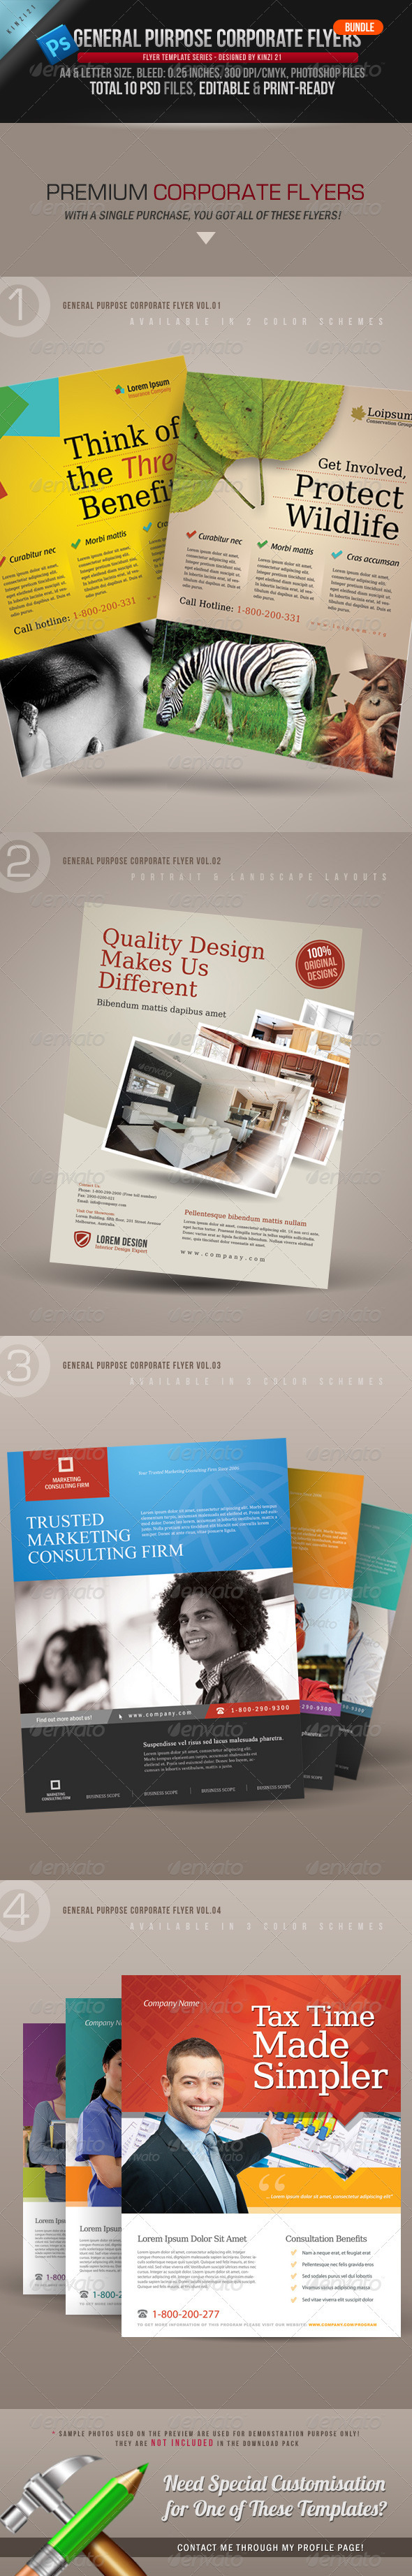 General Purpose Corporate Flyer Bundle - Corporate Flyers